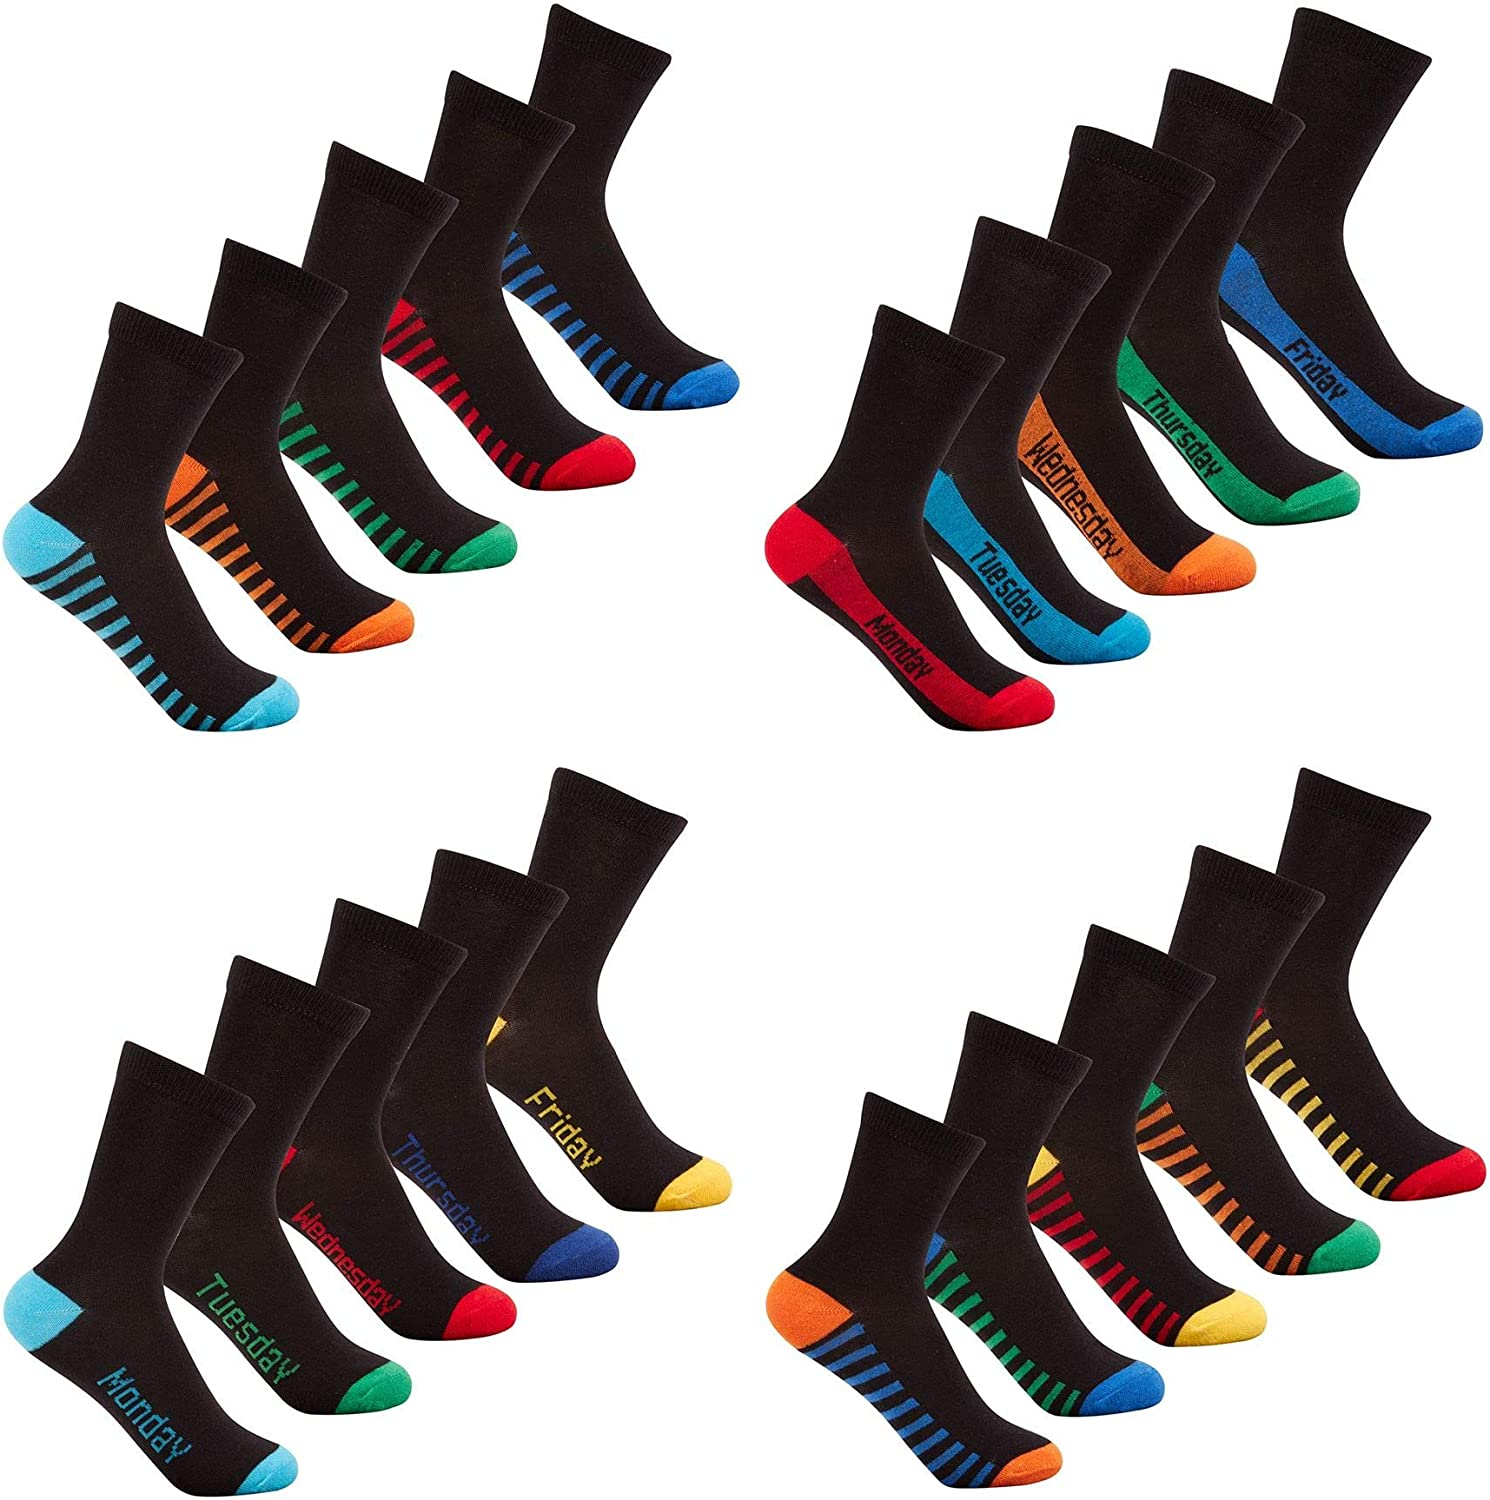 FRI Boys//Kids 5//10 Socks Pairs Packs COTTON RICH EVERYDAY Casual School Design Black Heel and Toe Stripe Mon